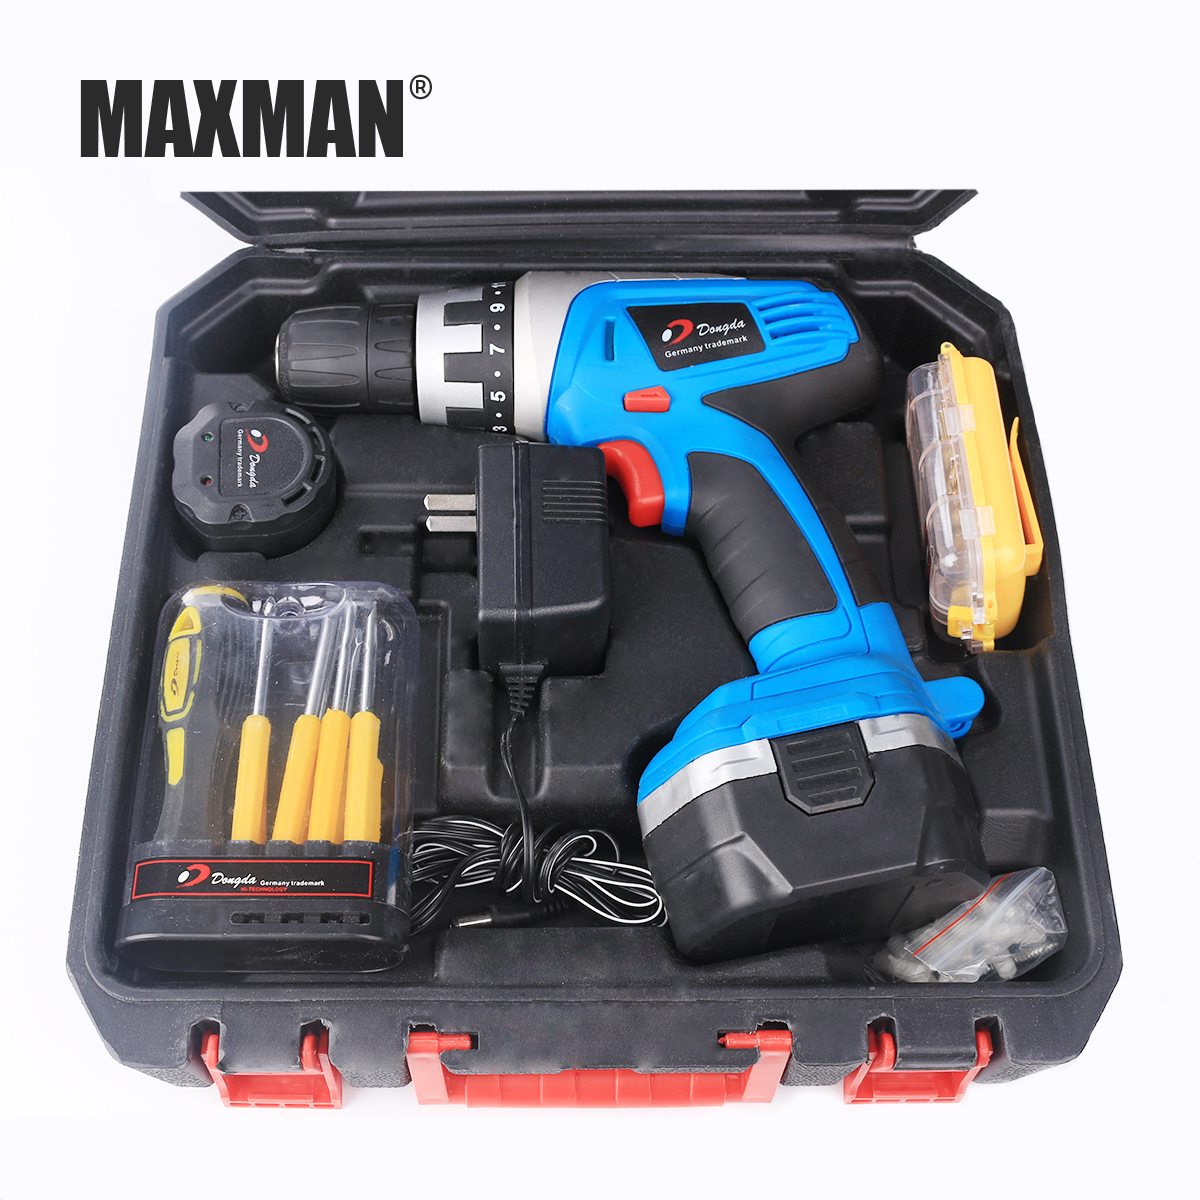 MAXMAN Electric Drill Household Power Tools 14.4V DC Lithium-Ion Battery Portable Charging Hand Mini Drill Wrench Tool Set hot sale kruk chair taburetes elephant stools for shoes designer furniture sofa animal personality fabric modern stool chair